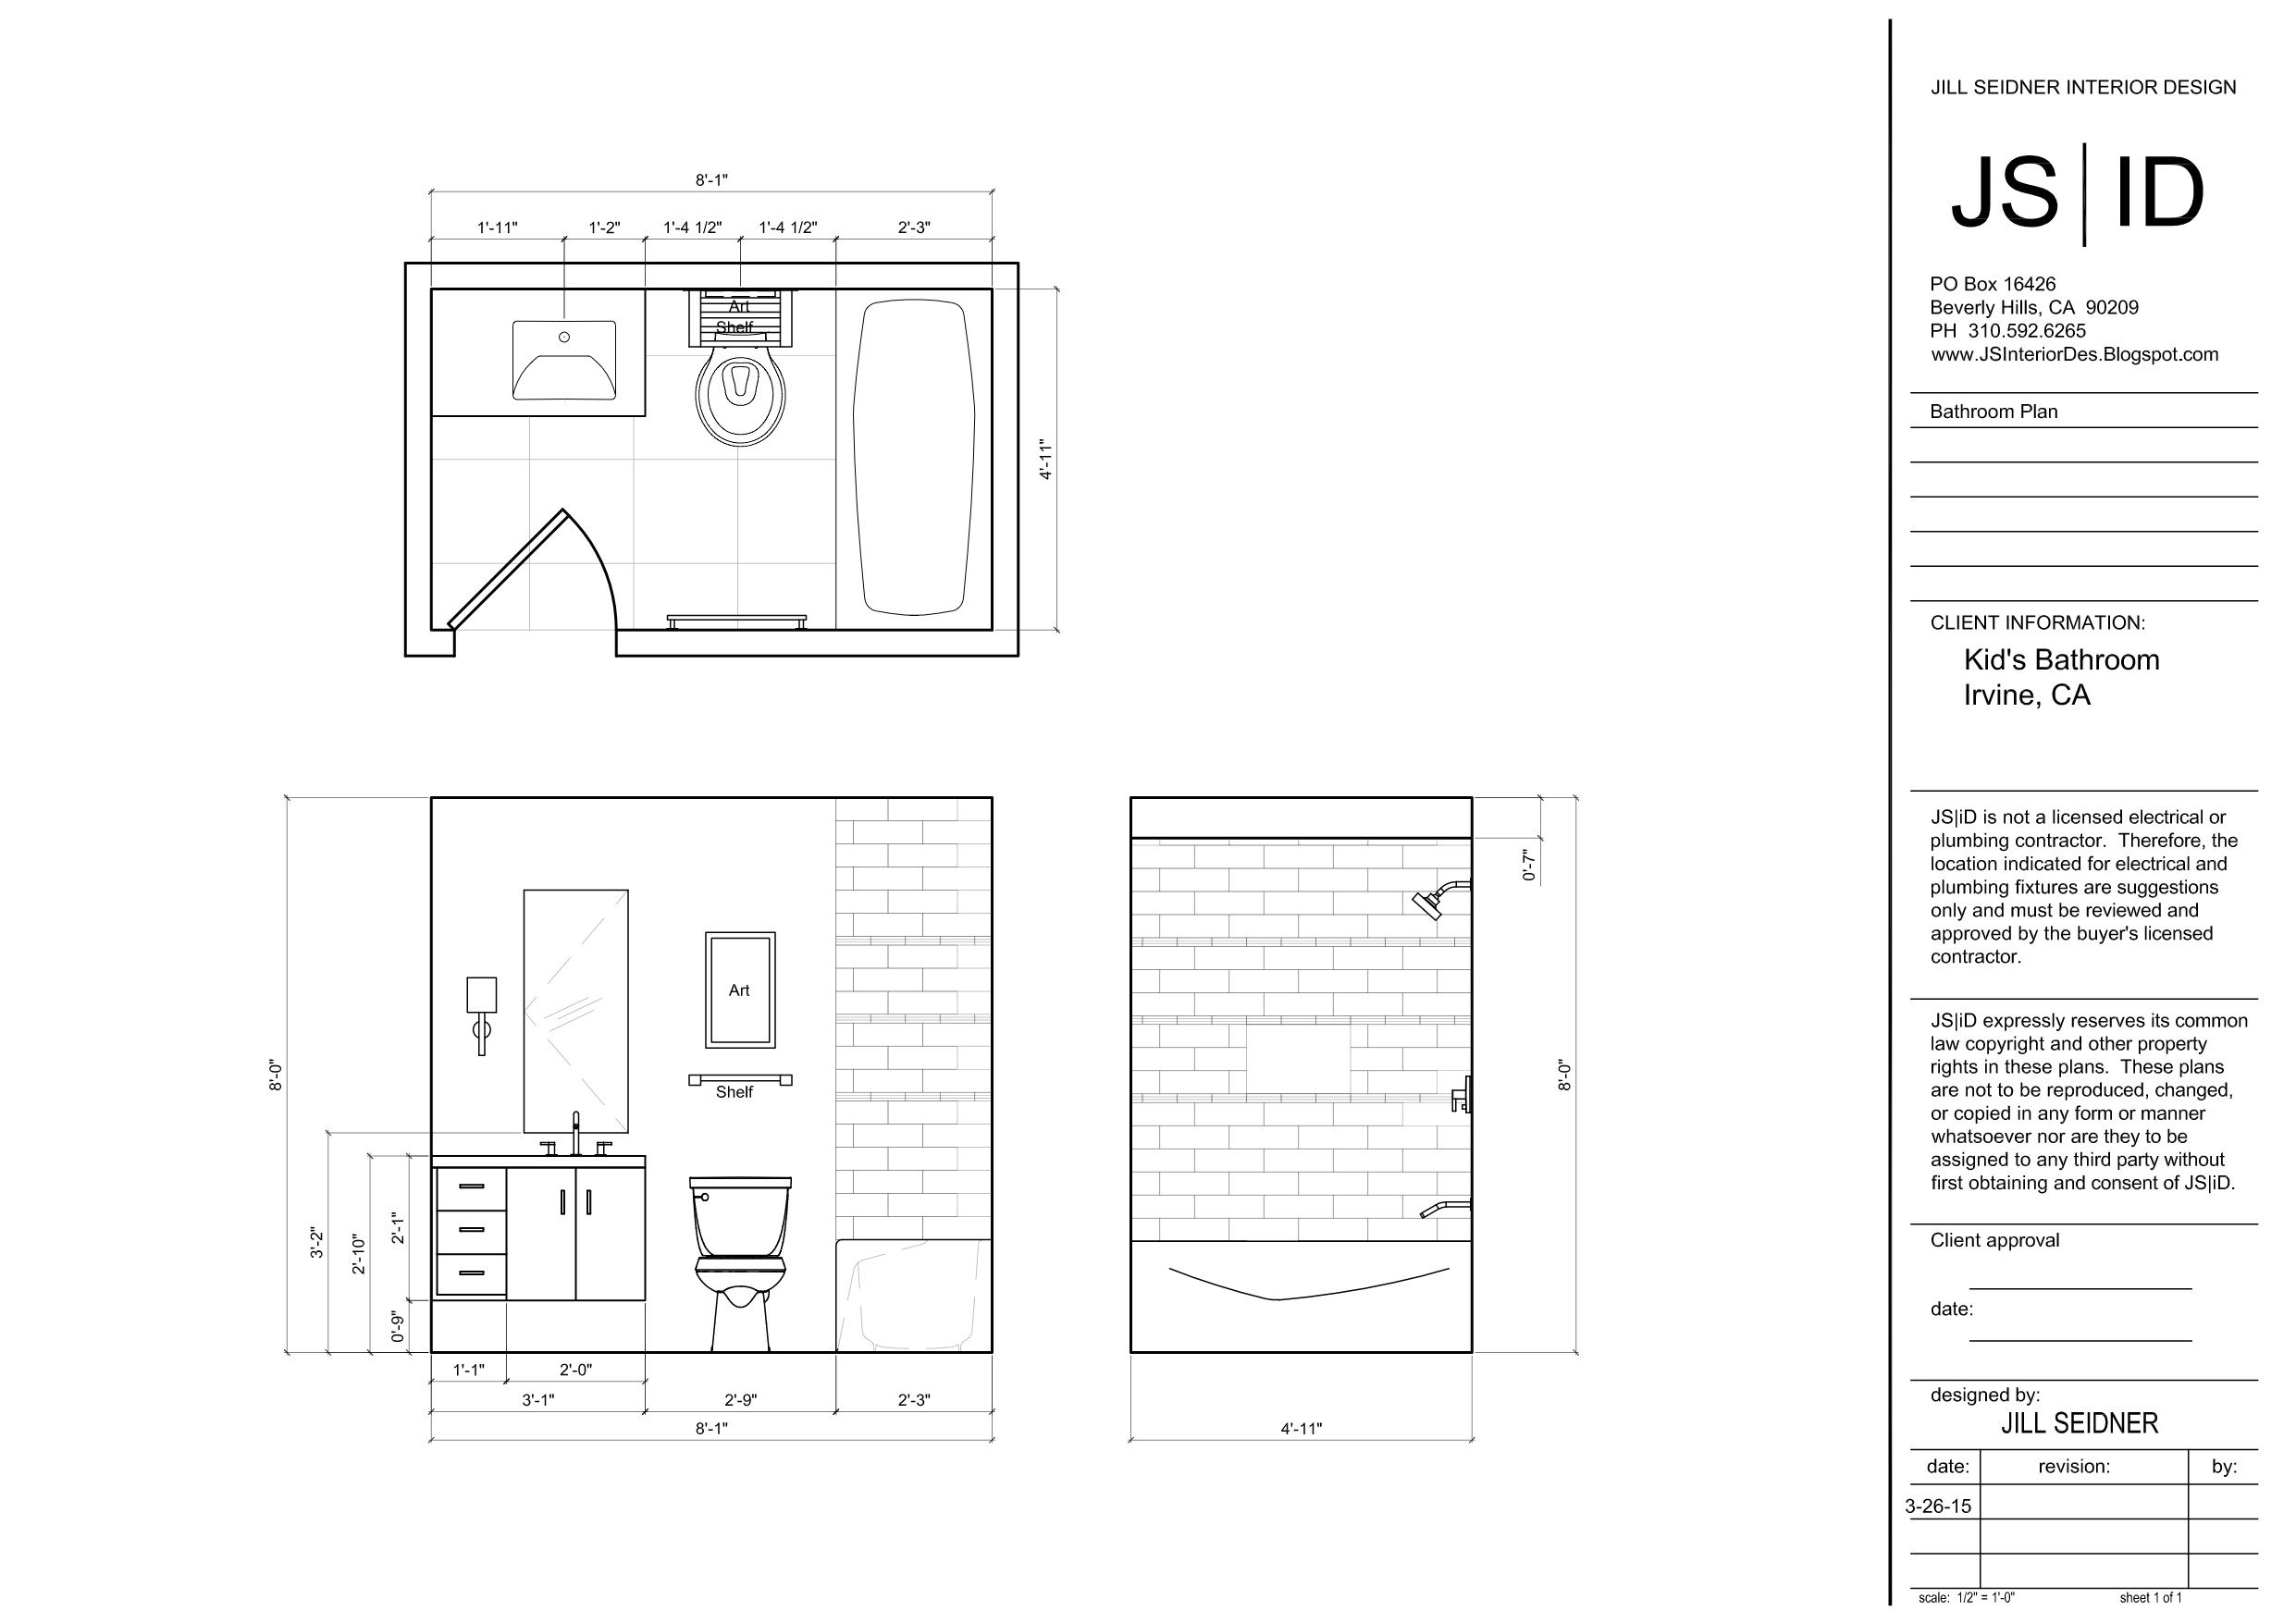 Bathroom drawings design - Irvine Ca Residence Kid S Bathroom Plan Elevation Drawing